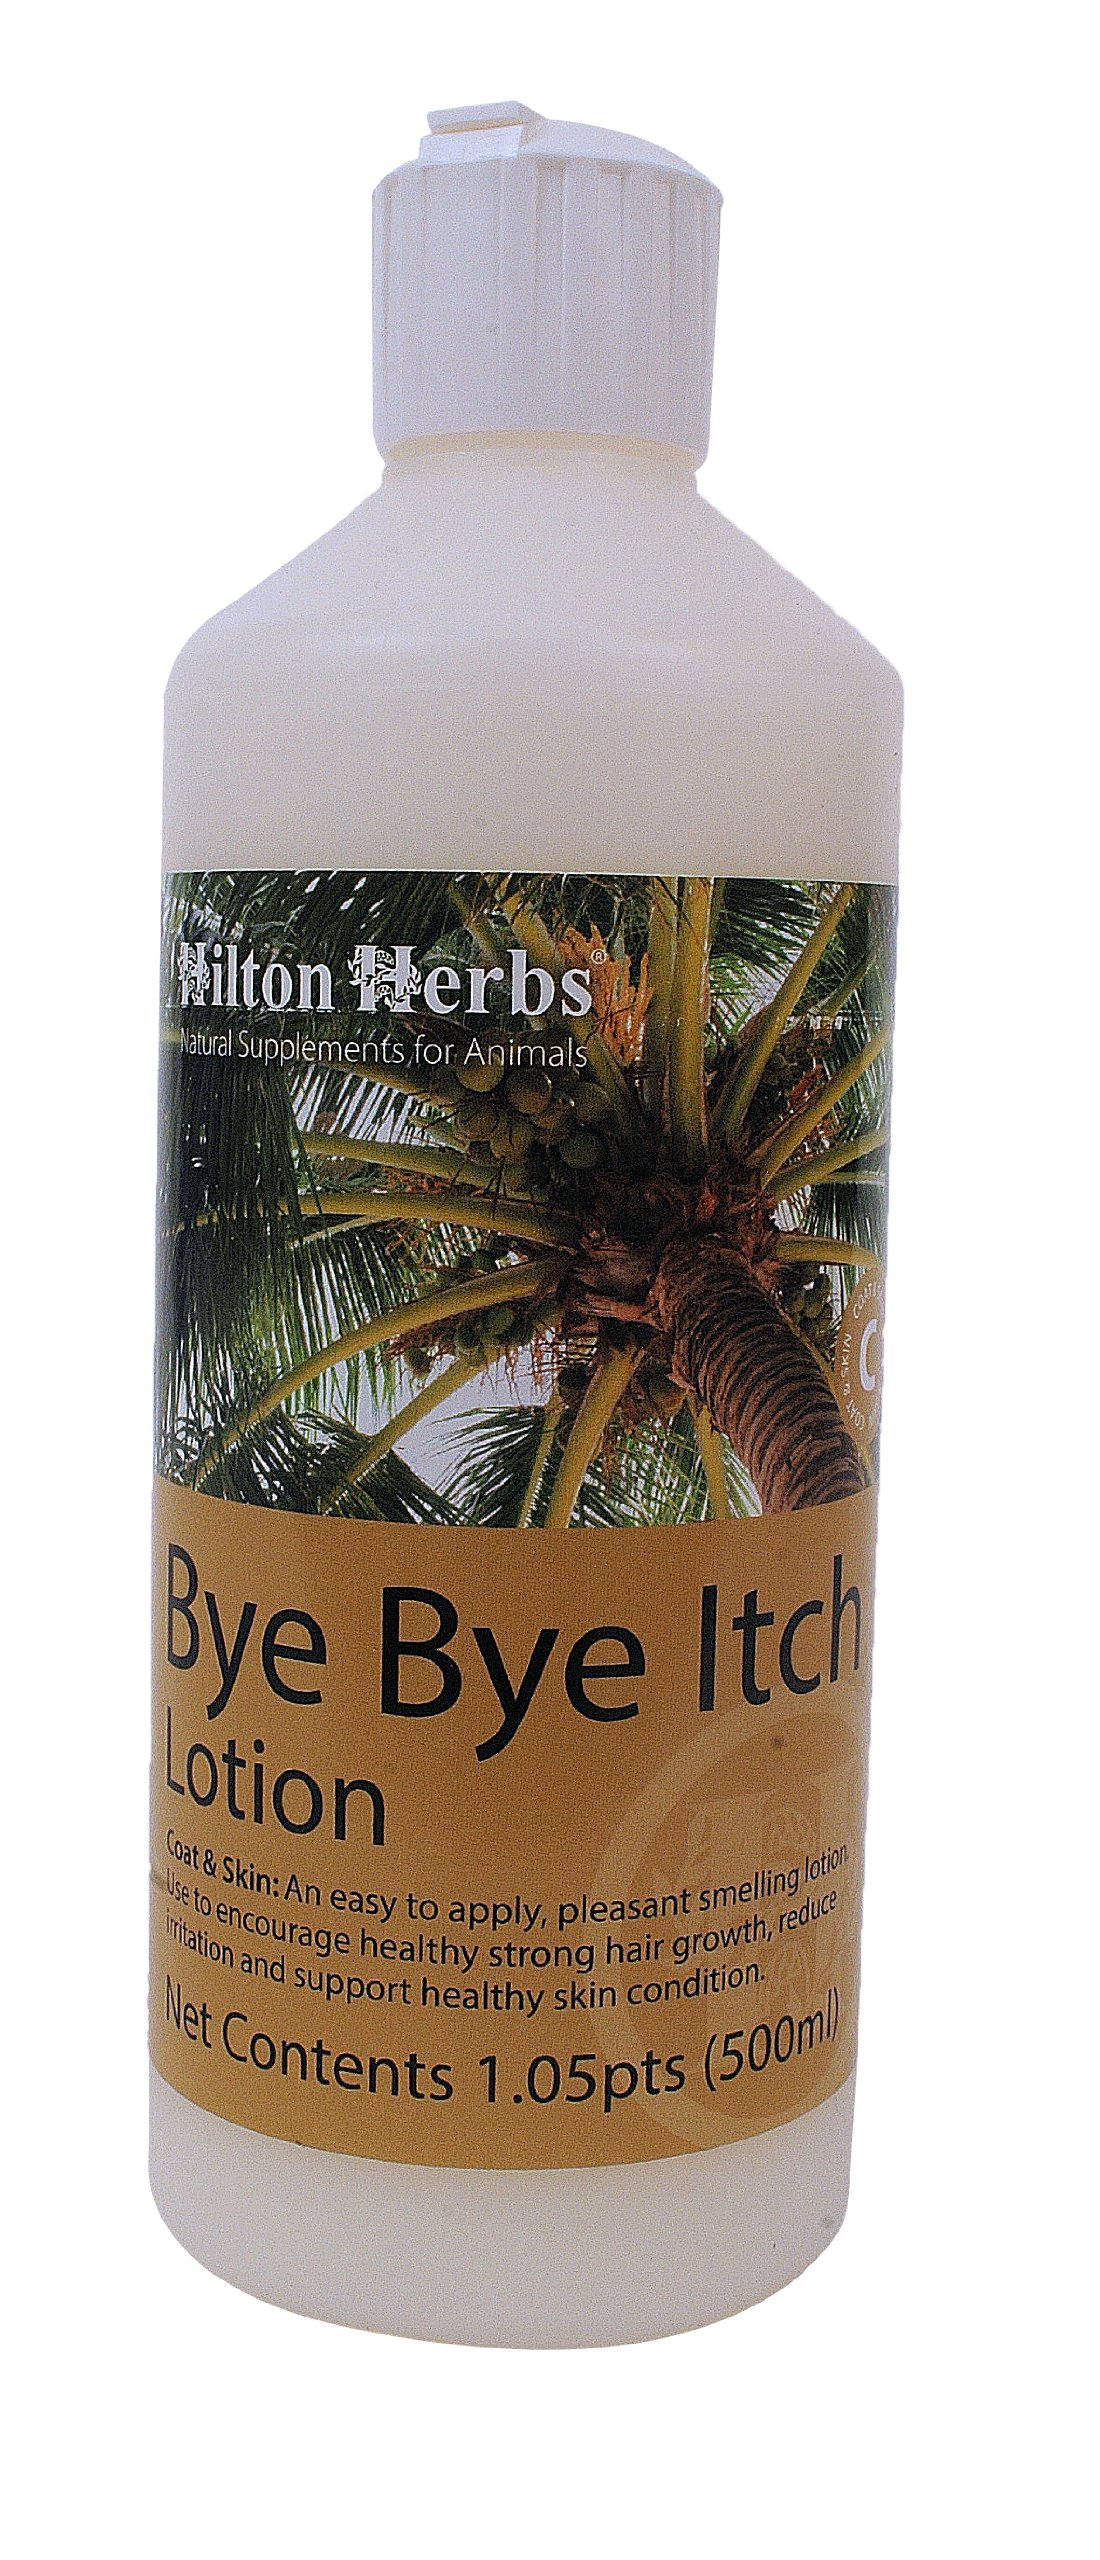 Hilton Herbs Bye Bye Itch Skin Allergy Lotion for Horses / Dogs 500ml by Hilton Herbs